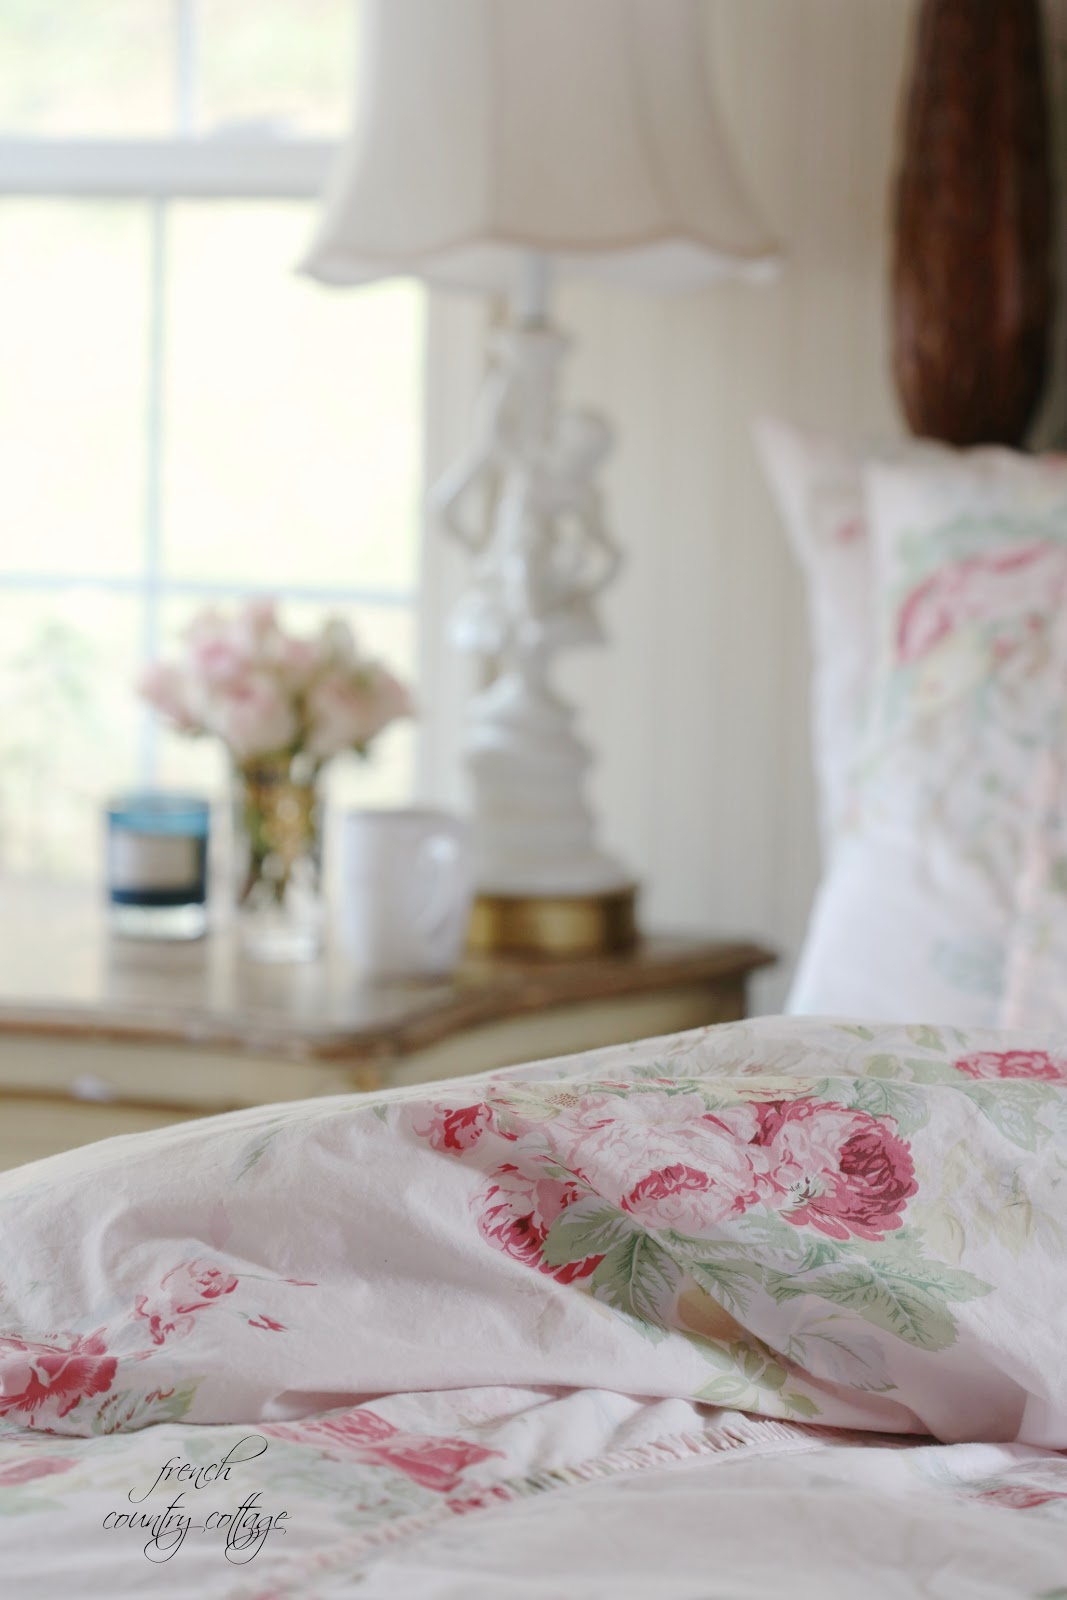 Blush floral bedding with flowers on the nightstand